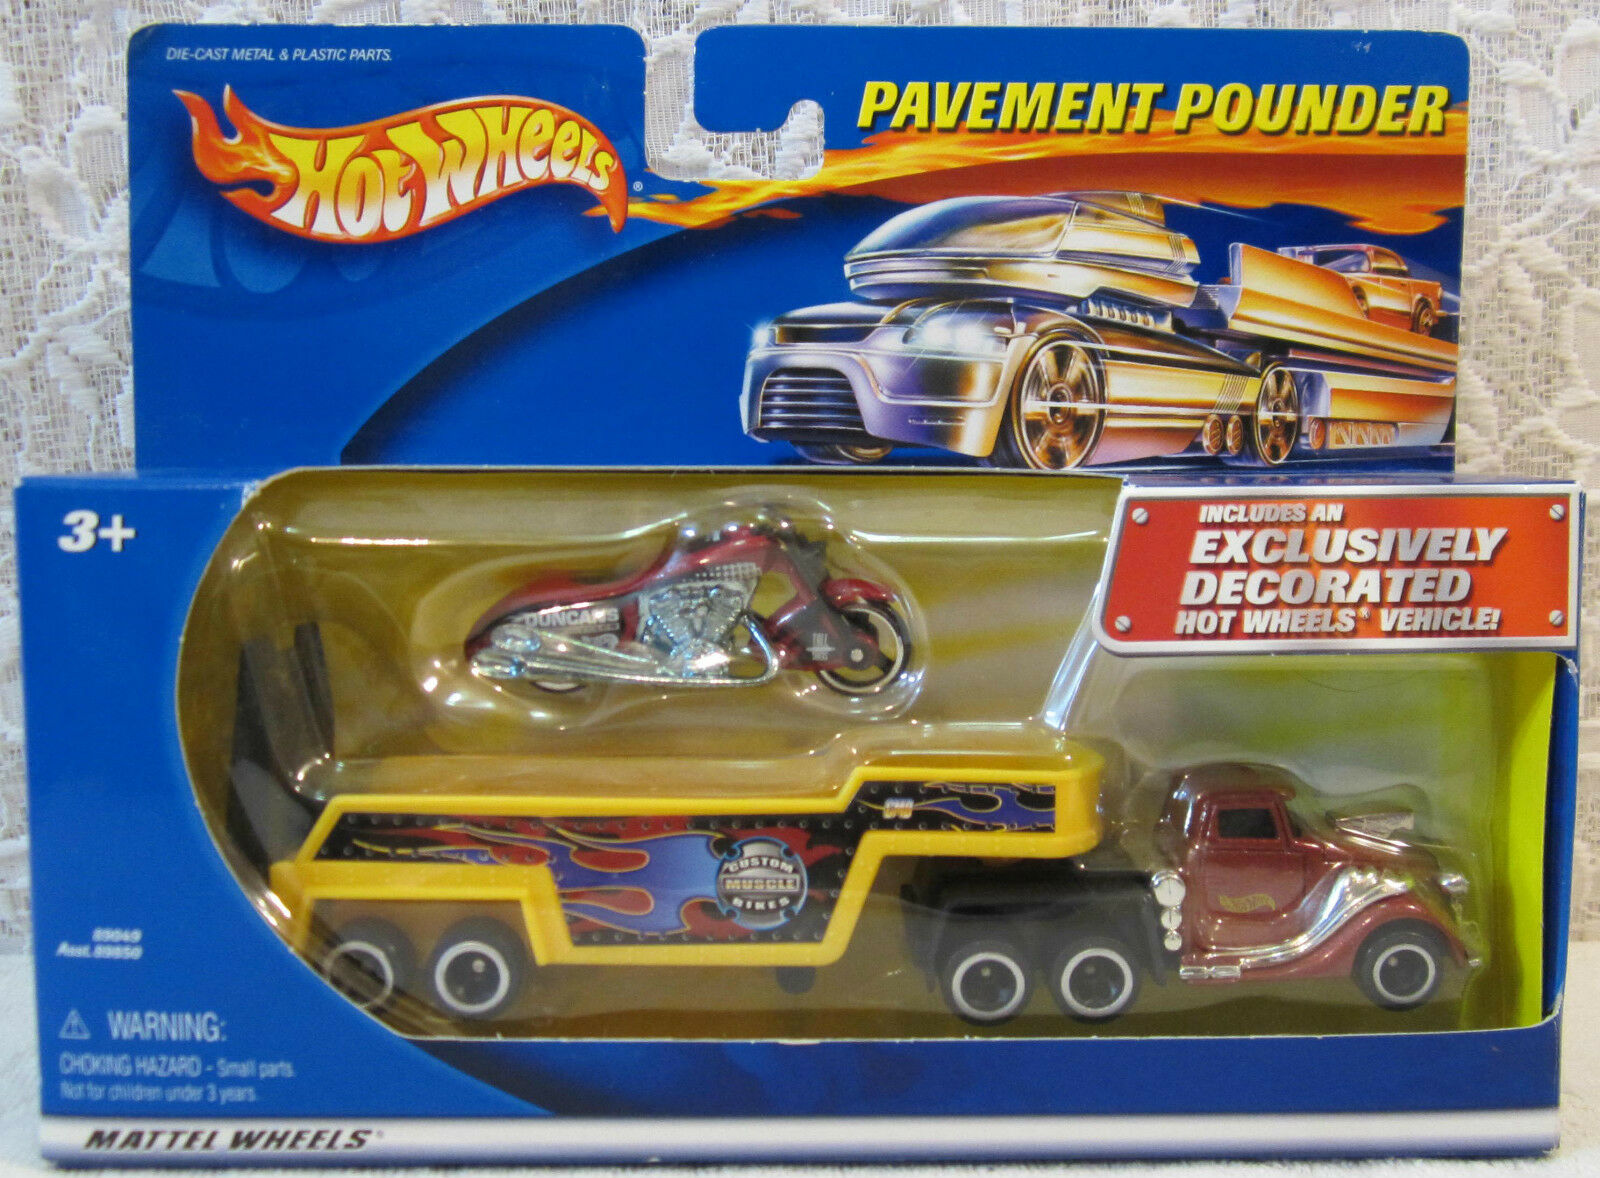 2001 Hot Wheels Pavement Pounder Exclusive Scorchin Scooter